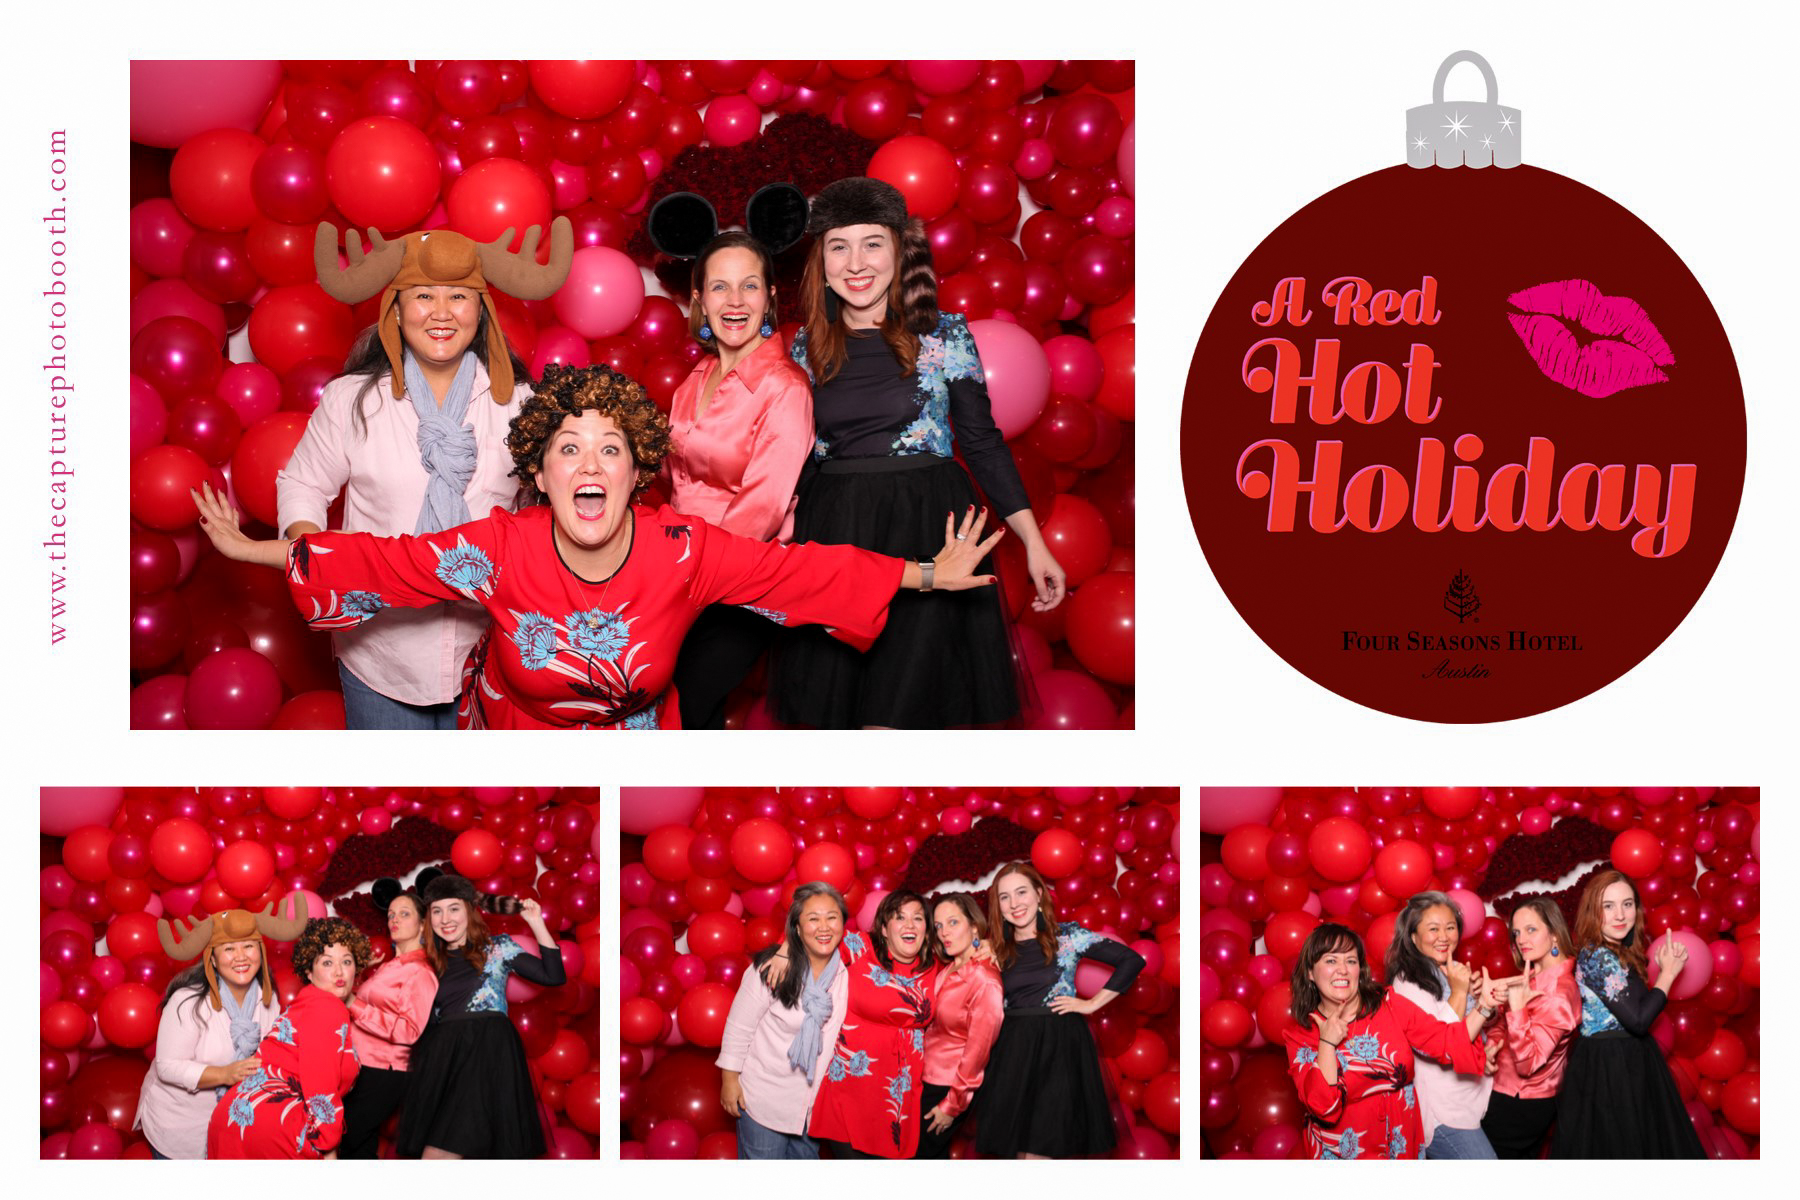 A Red Hot Holiday!